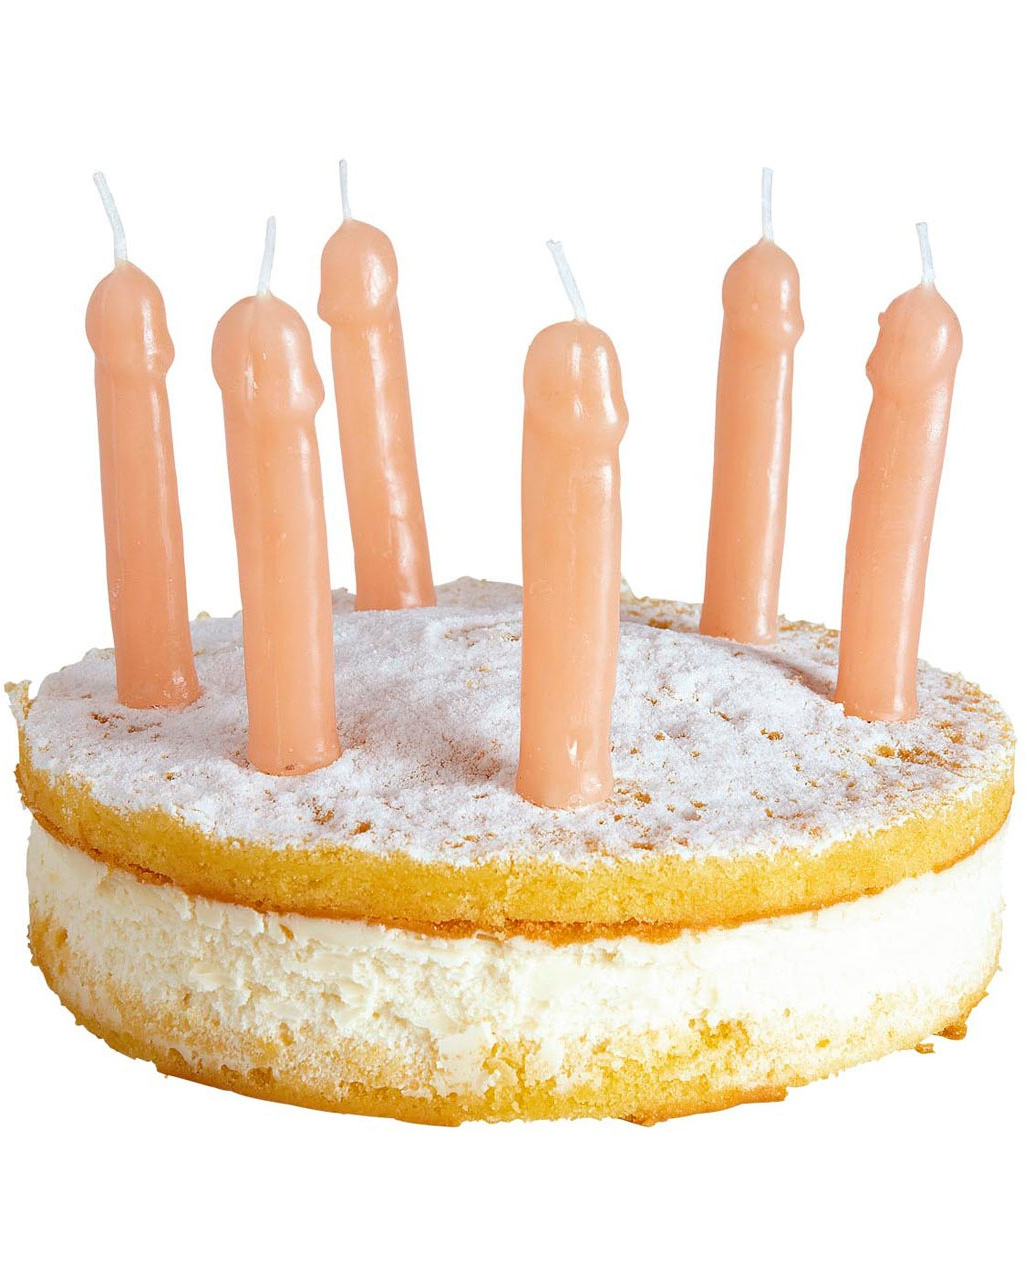 Penis party candles set of 6 buy sexy birthday candles horror penis party candles set of 6 izmirmasajfo